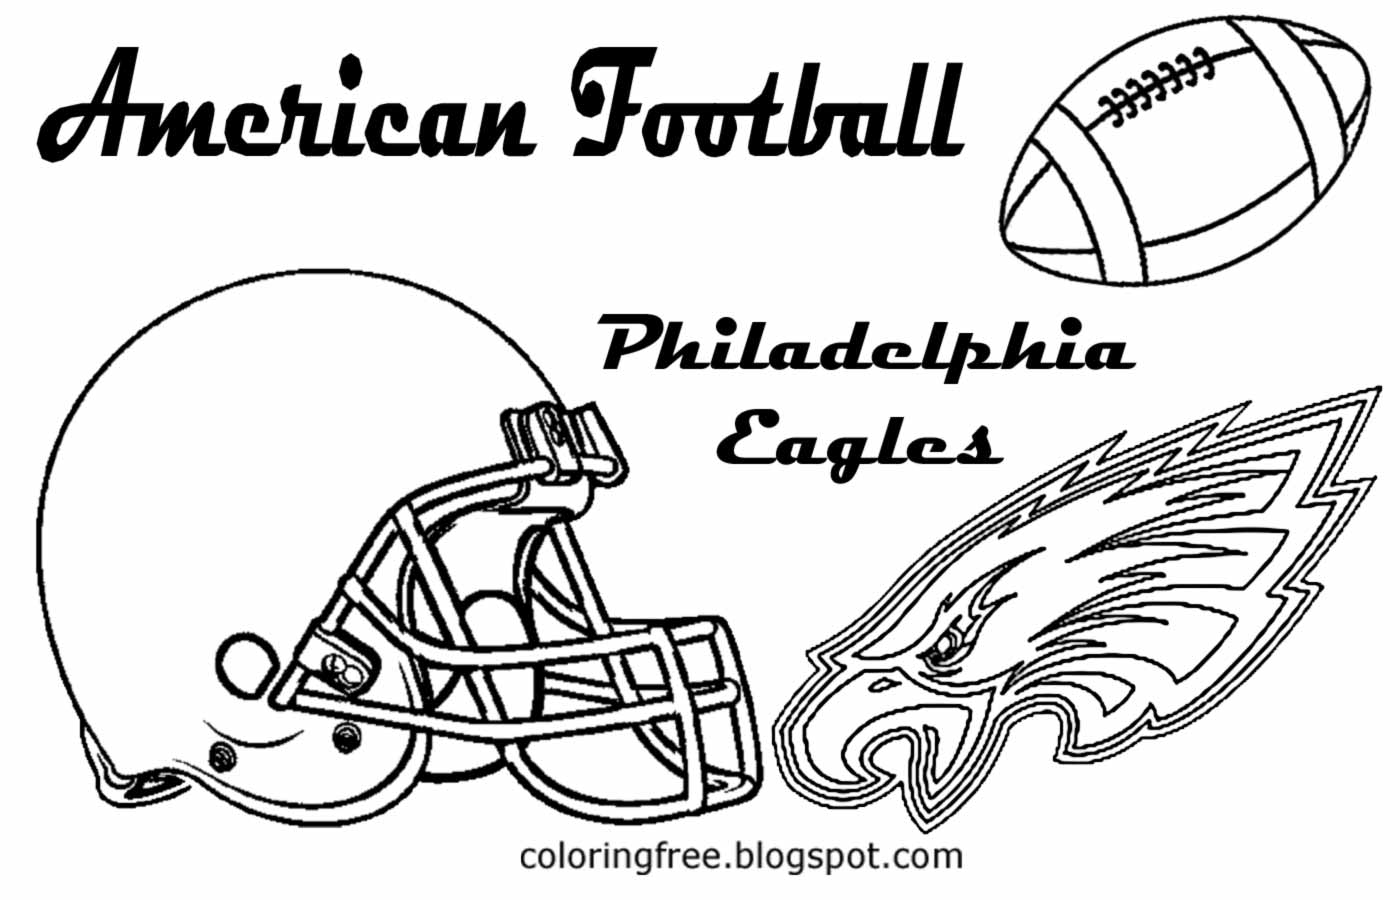 Uncategorized Eagles Football Coloring Pages philadelphia eagles coloring pages murderthestout football 28 images nfl